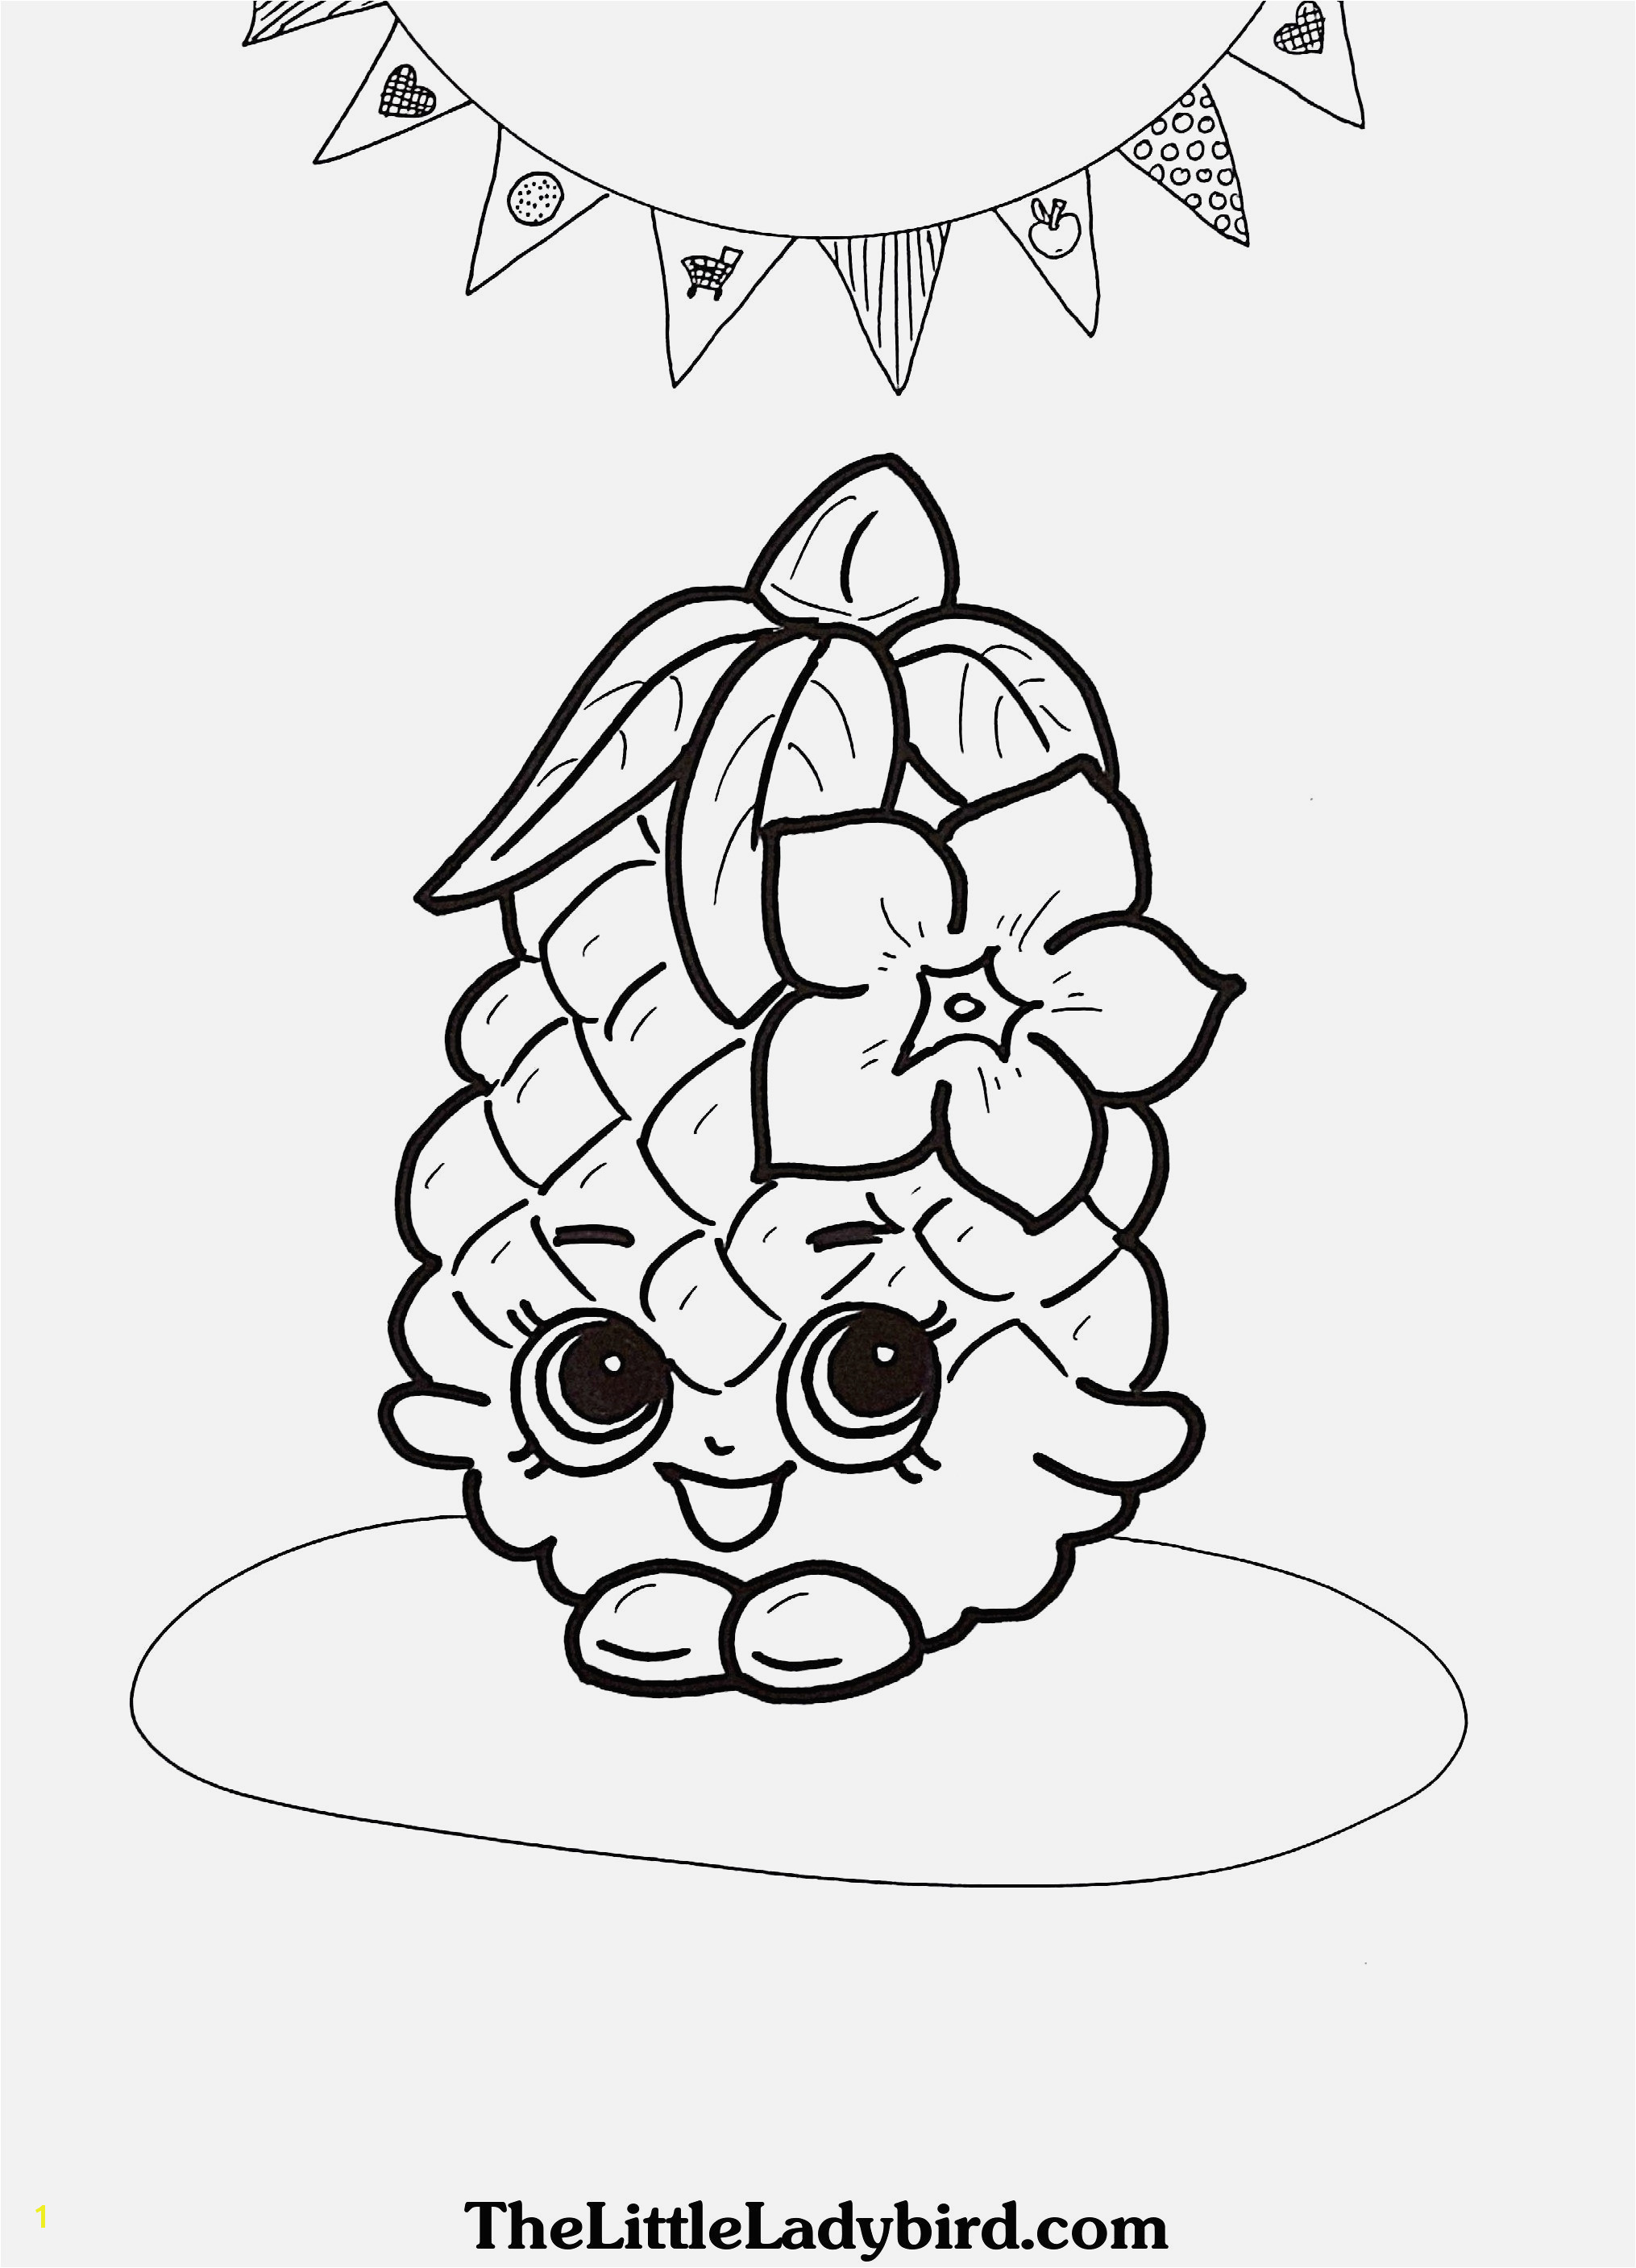 Funny Coloring Pages Amazing Advantages Fun Things to Color Inspirational Cool Coloring Page Unique Witch